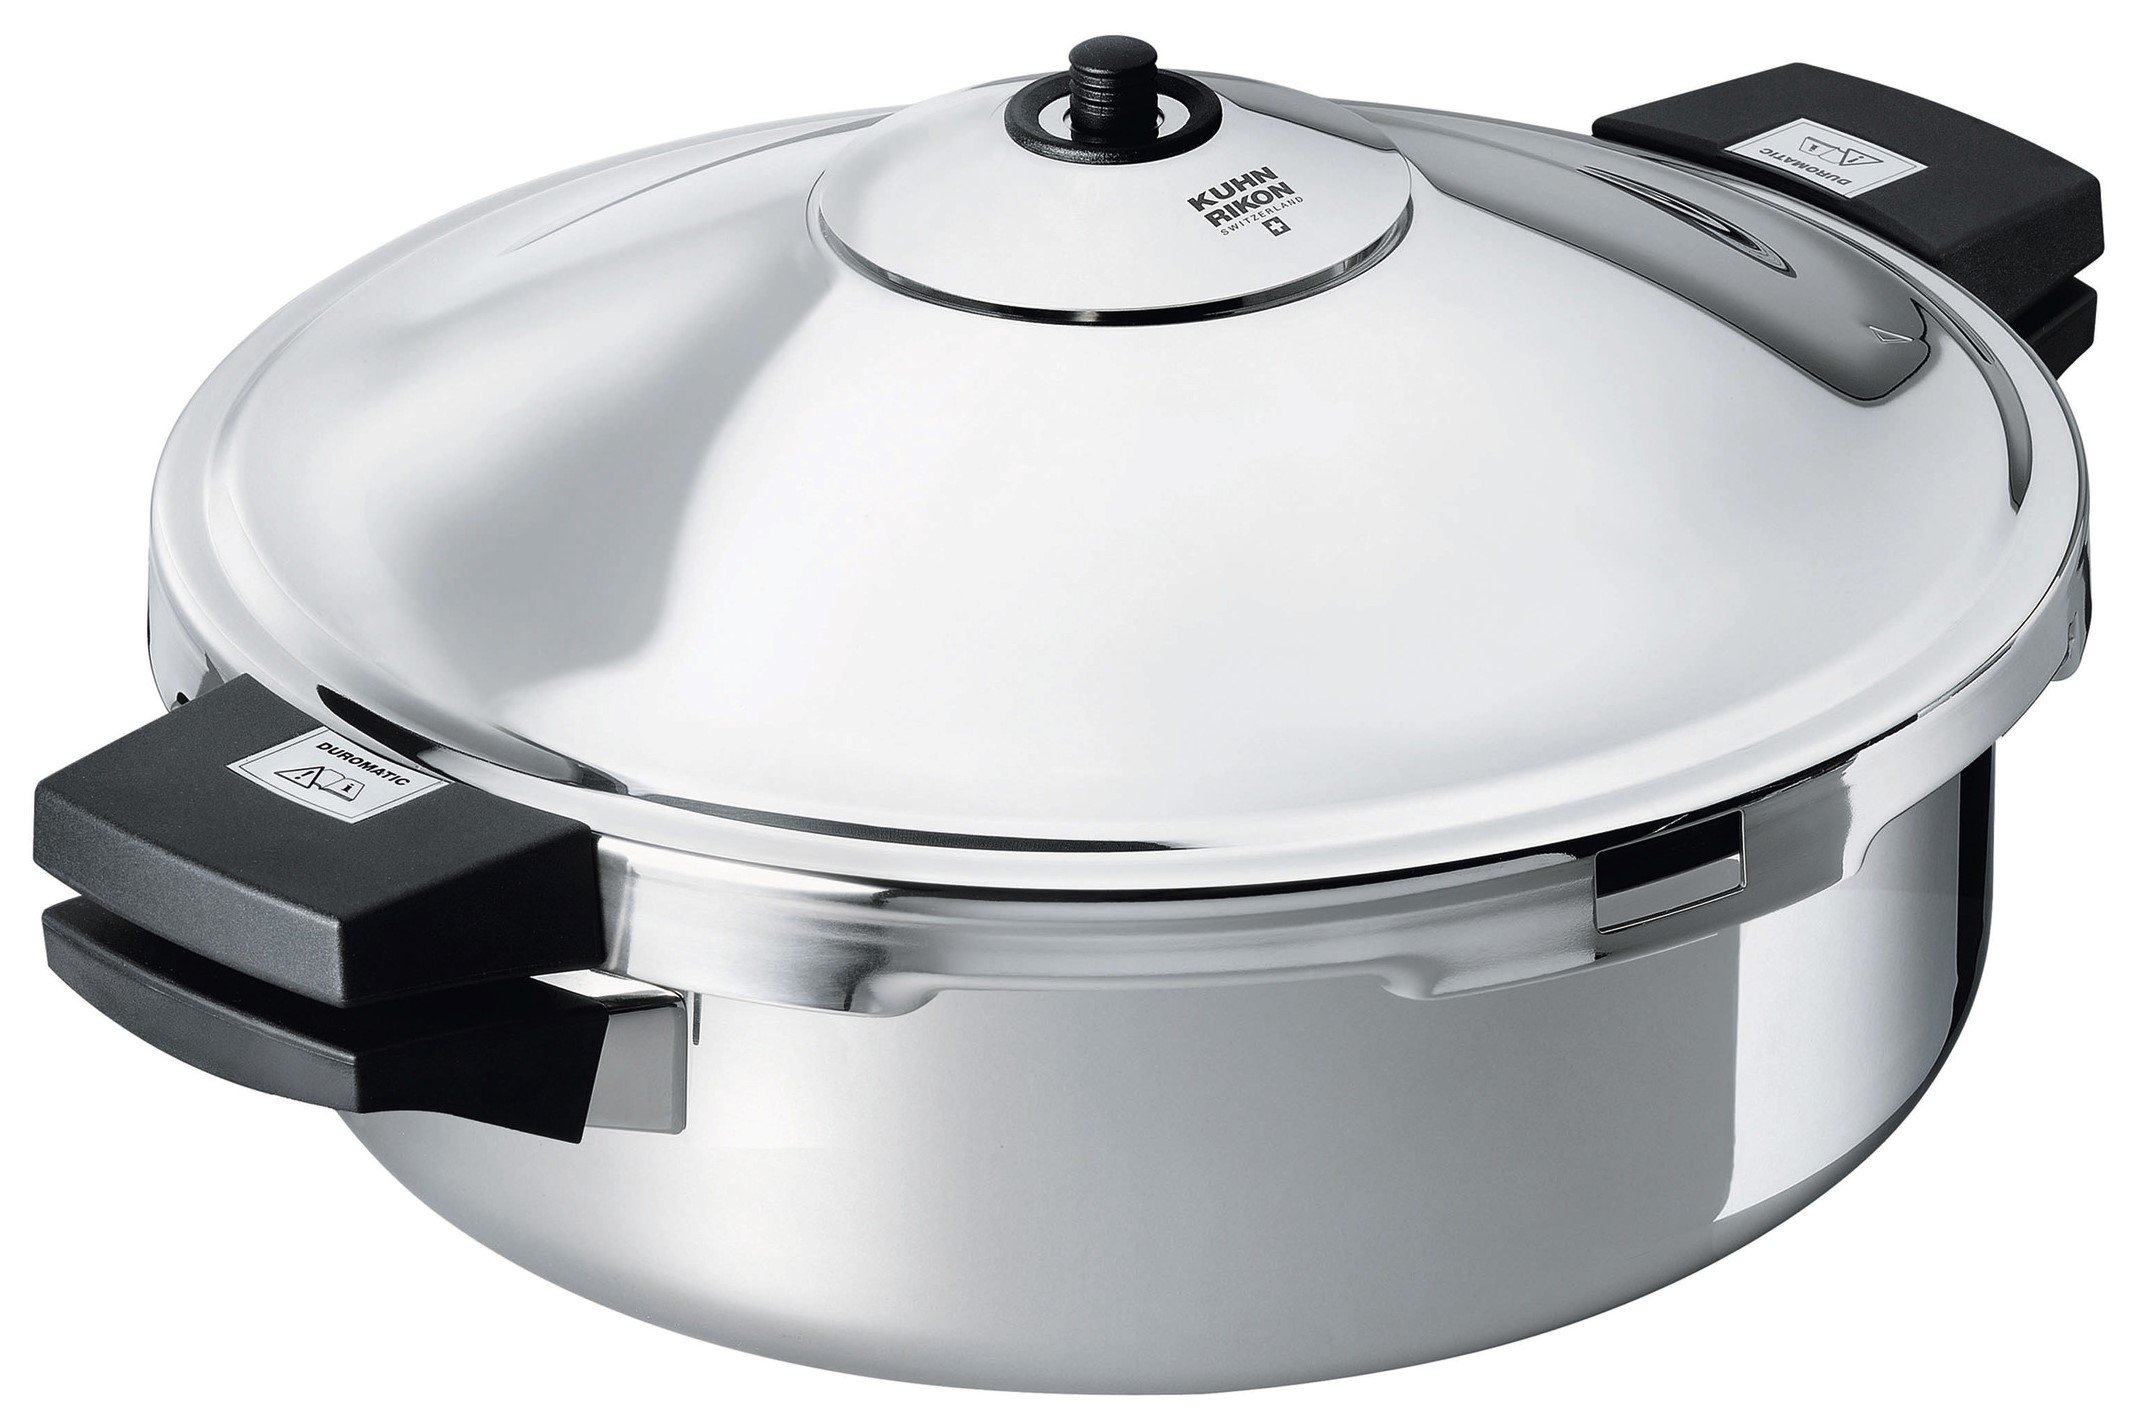 Kuhn Rikon Duromatic Hotel Stainless Steel Frying Pan, 5 Litre / 28 cm